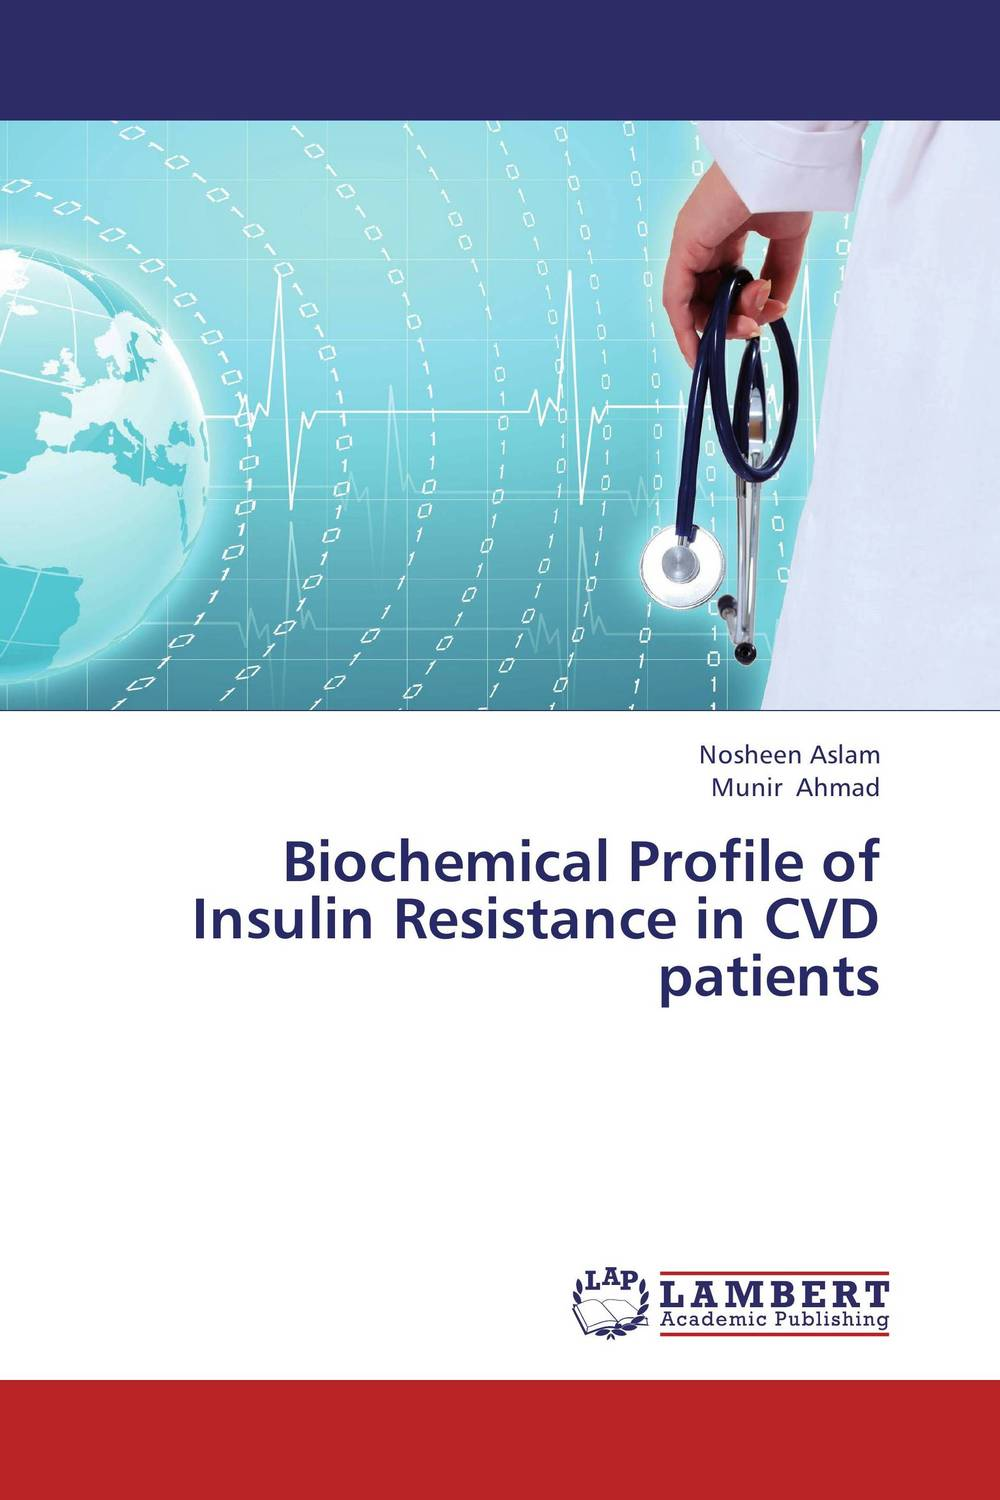 Biochemical Profile of Insulin Resistance in CVD patients vishnu gupta modulation of ovarian functions and fertility response using insulin